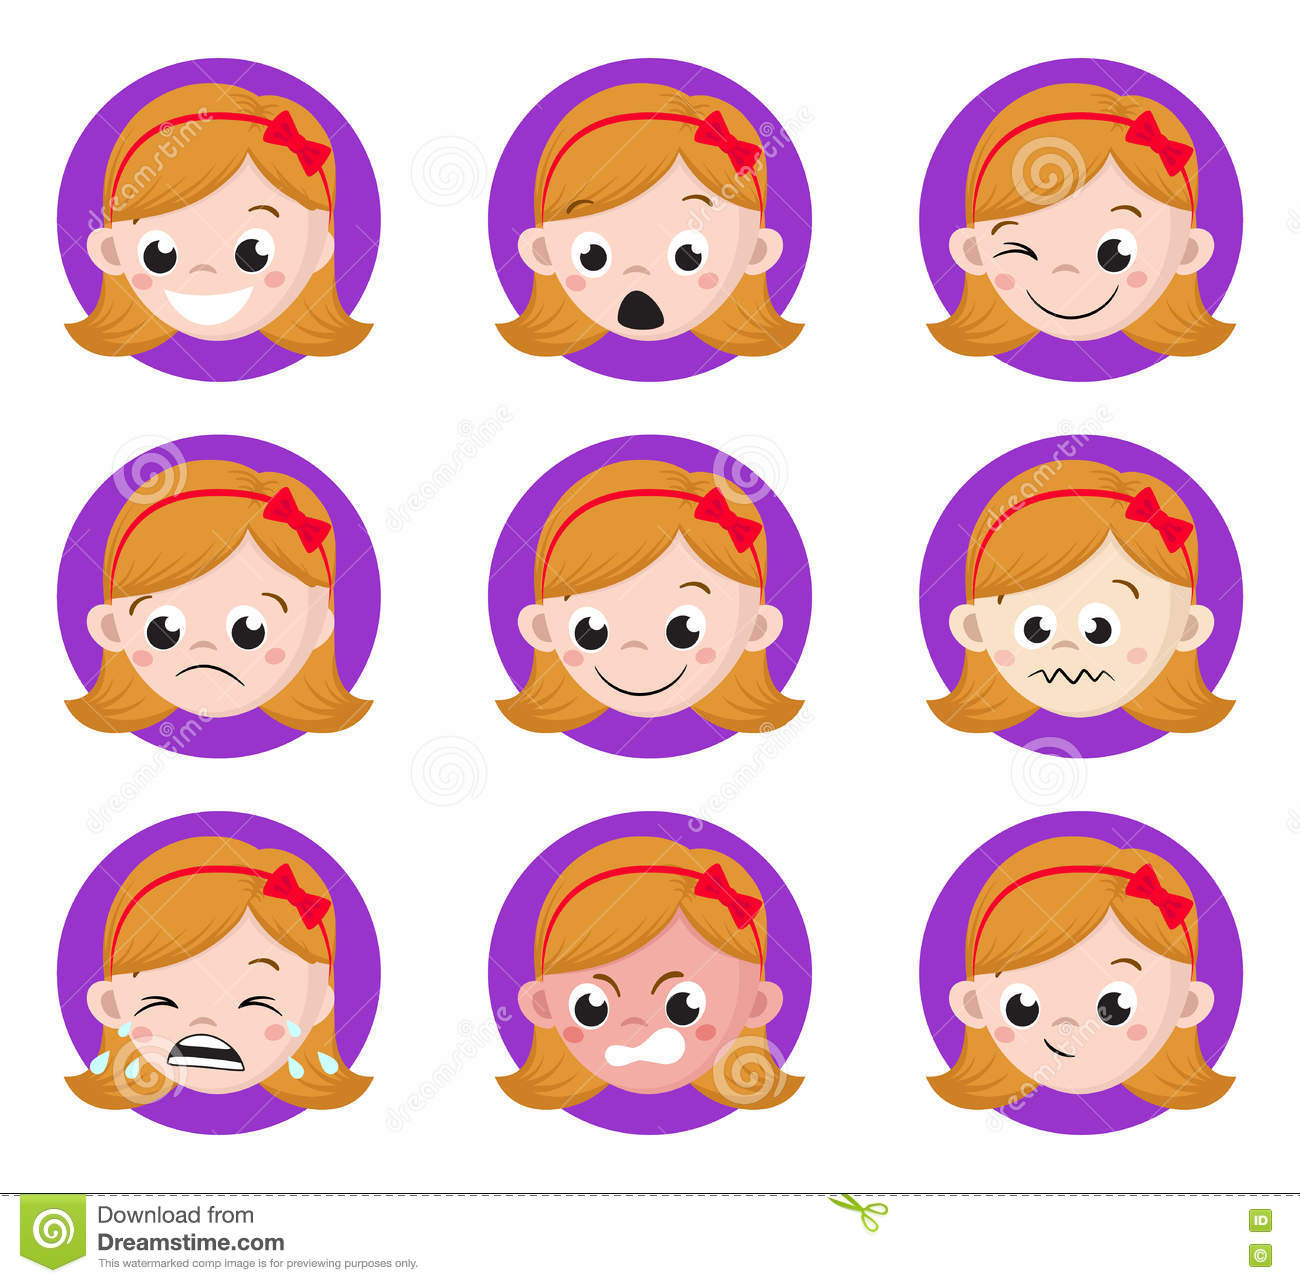 Worksheets Emotion Faces girl emotion faces cartoon set of female avatar expressions stock expressions